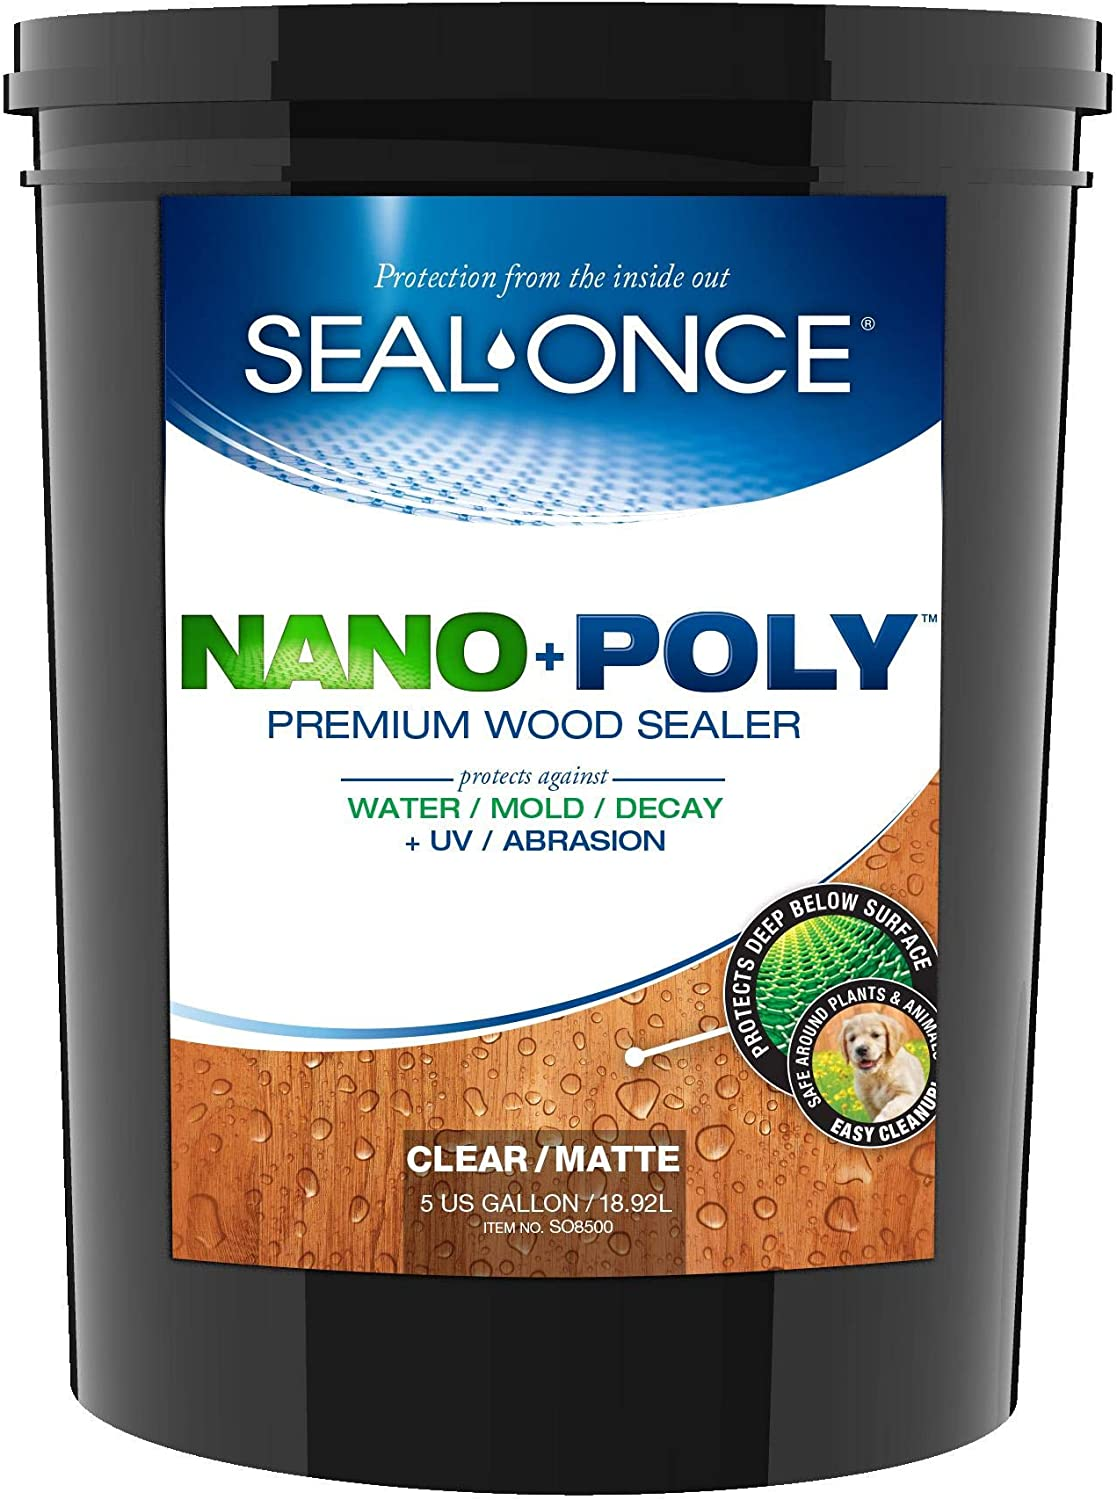 SEAL-ONCE NANO+POLY Penetrating Wood Sealer with Polyurethane - 5 Gallon. Water-based, Low-VOC, waterproofer & stain for decks, fences & log homes.